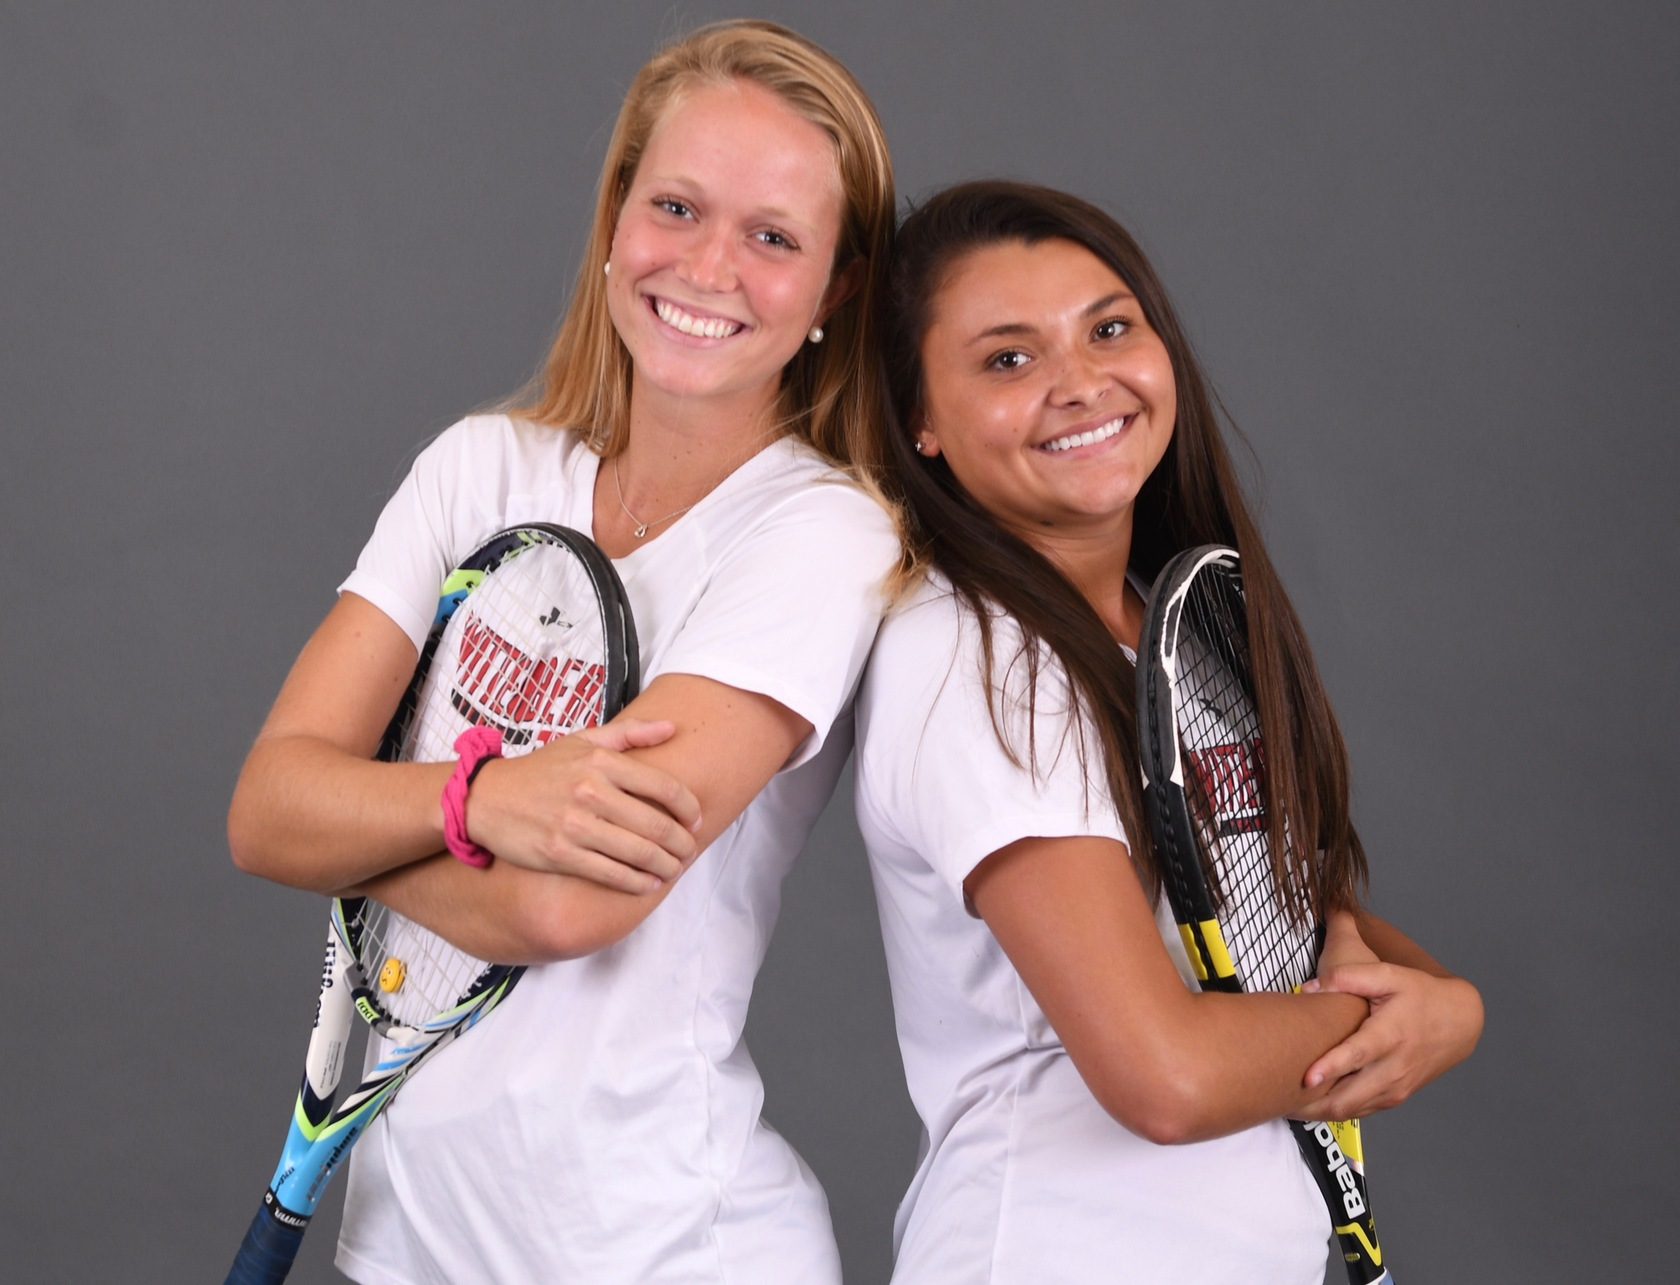 Senior Alivia Livesay (R) and junior Sarah Gallup (L) were both individual winners on Saturday in a 5-2 victory over Trine